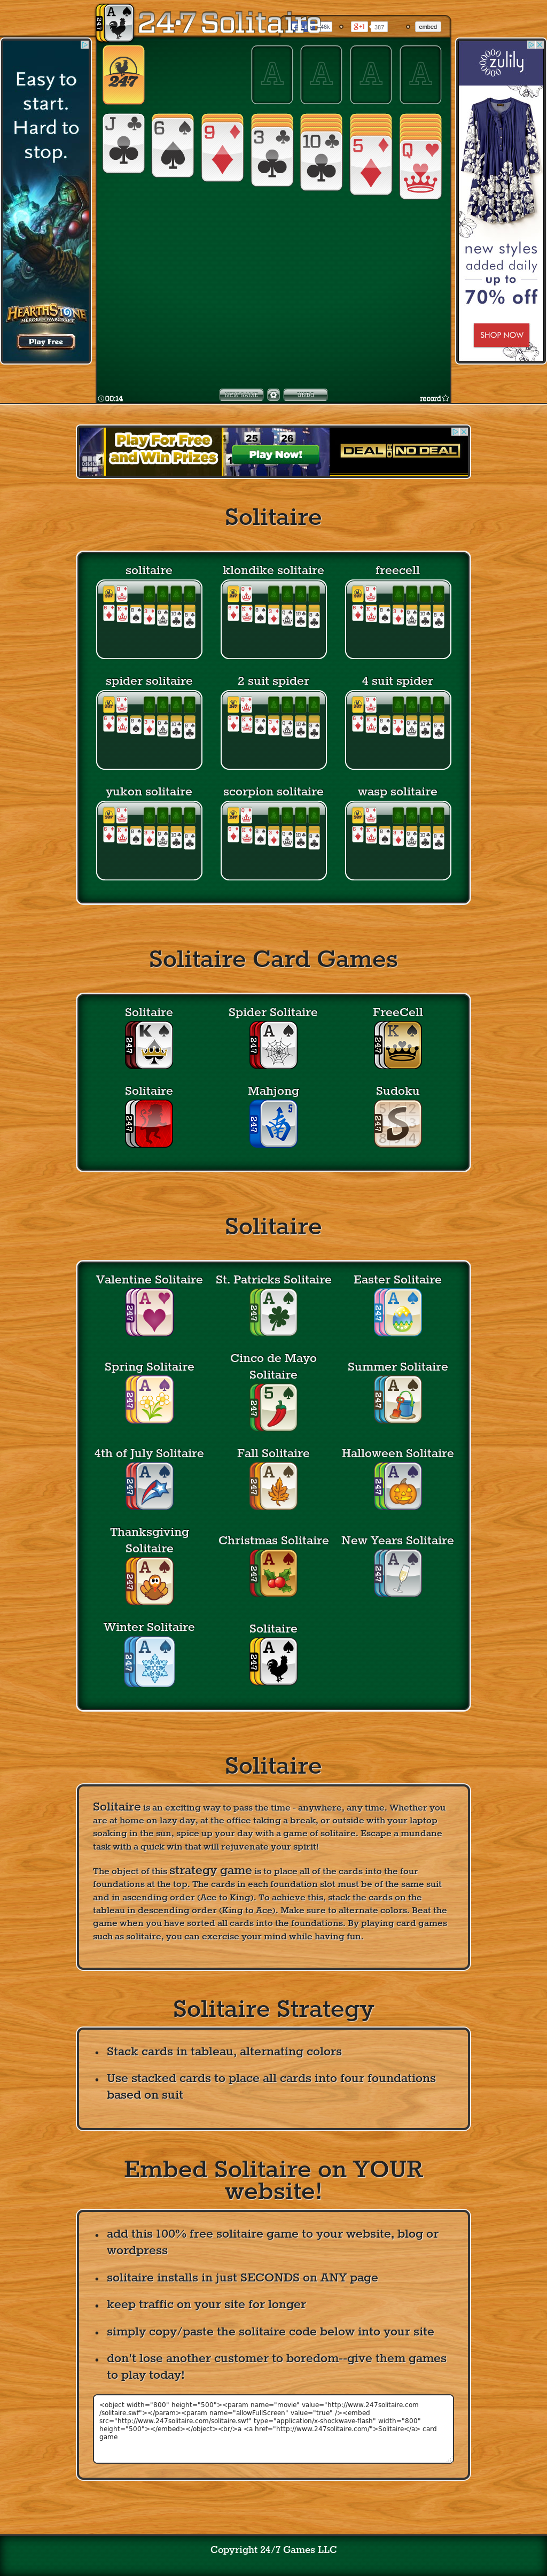 247Solitaire Competitors, Revenue and Employees - Owler Company Profile